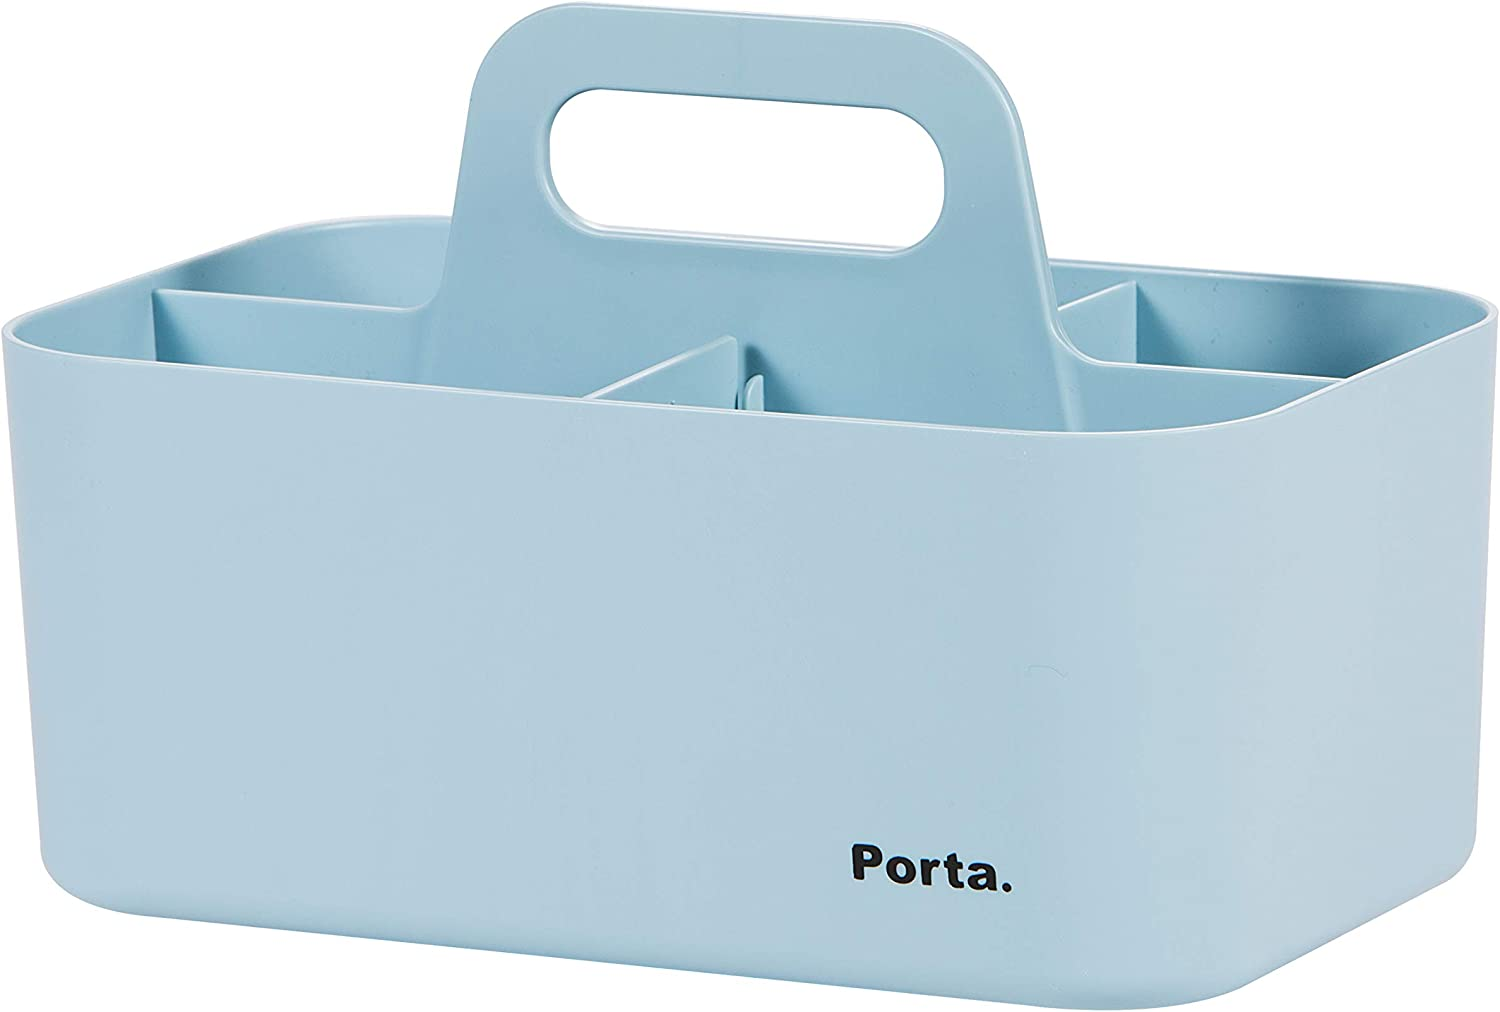 Litem Porta Compact - A Compact & Stackable Storage Unit for organizing Small Objects in Office & Home (Mint)